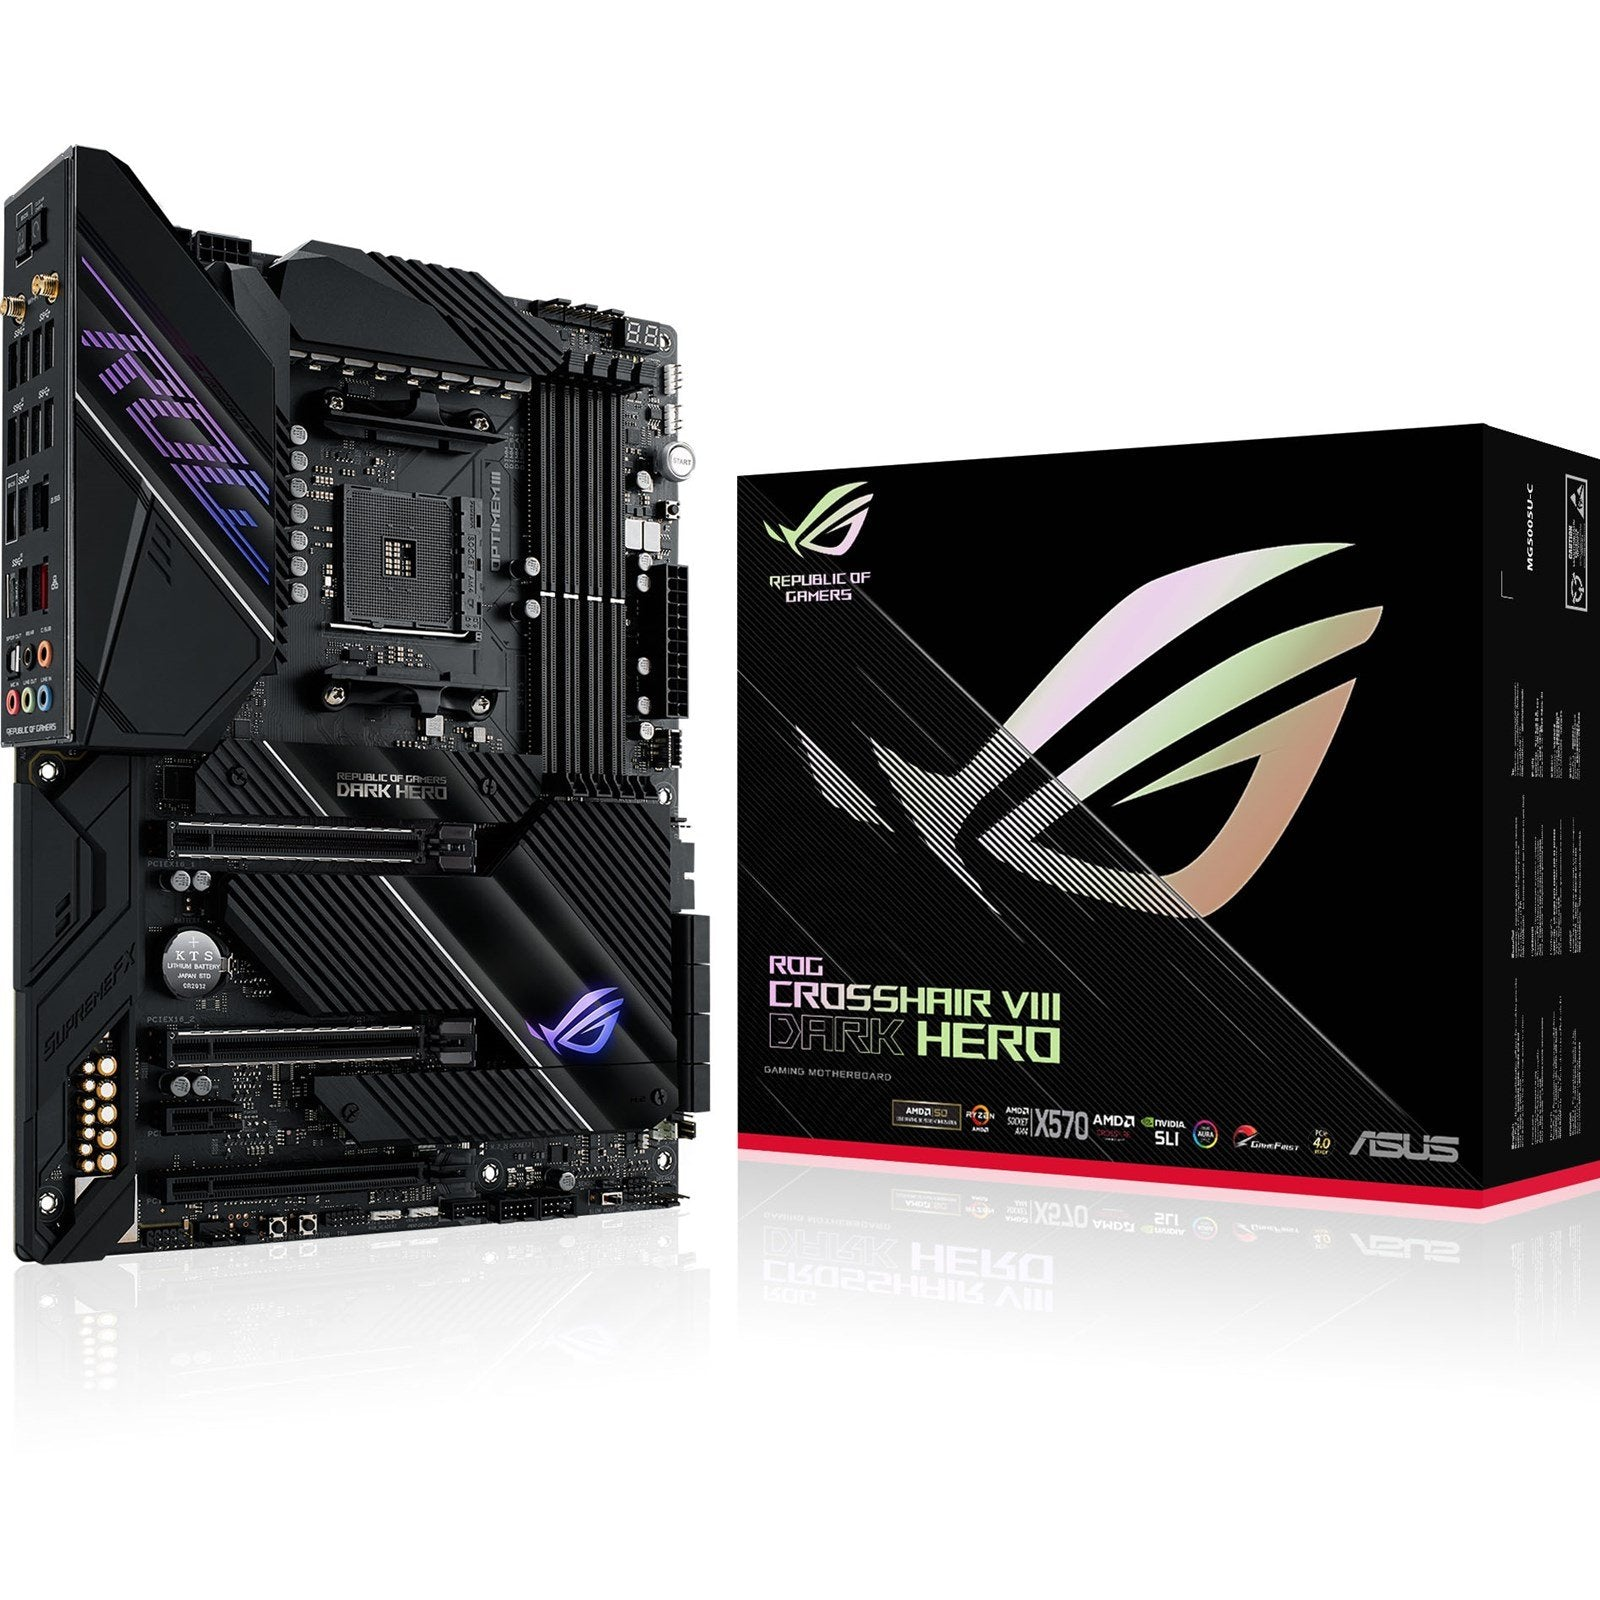 ASUS ROG Crosshair VIII Dark Hero AMD Motherboard Backorder*